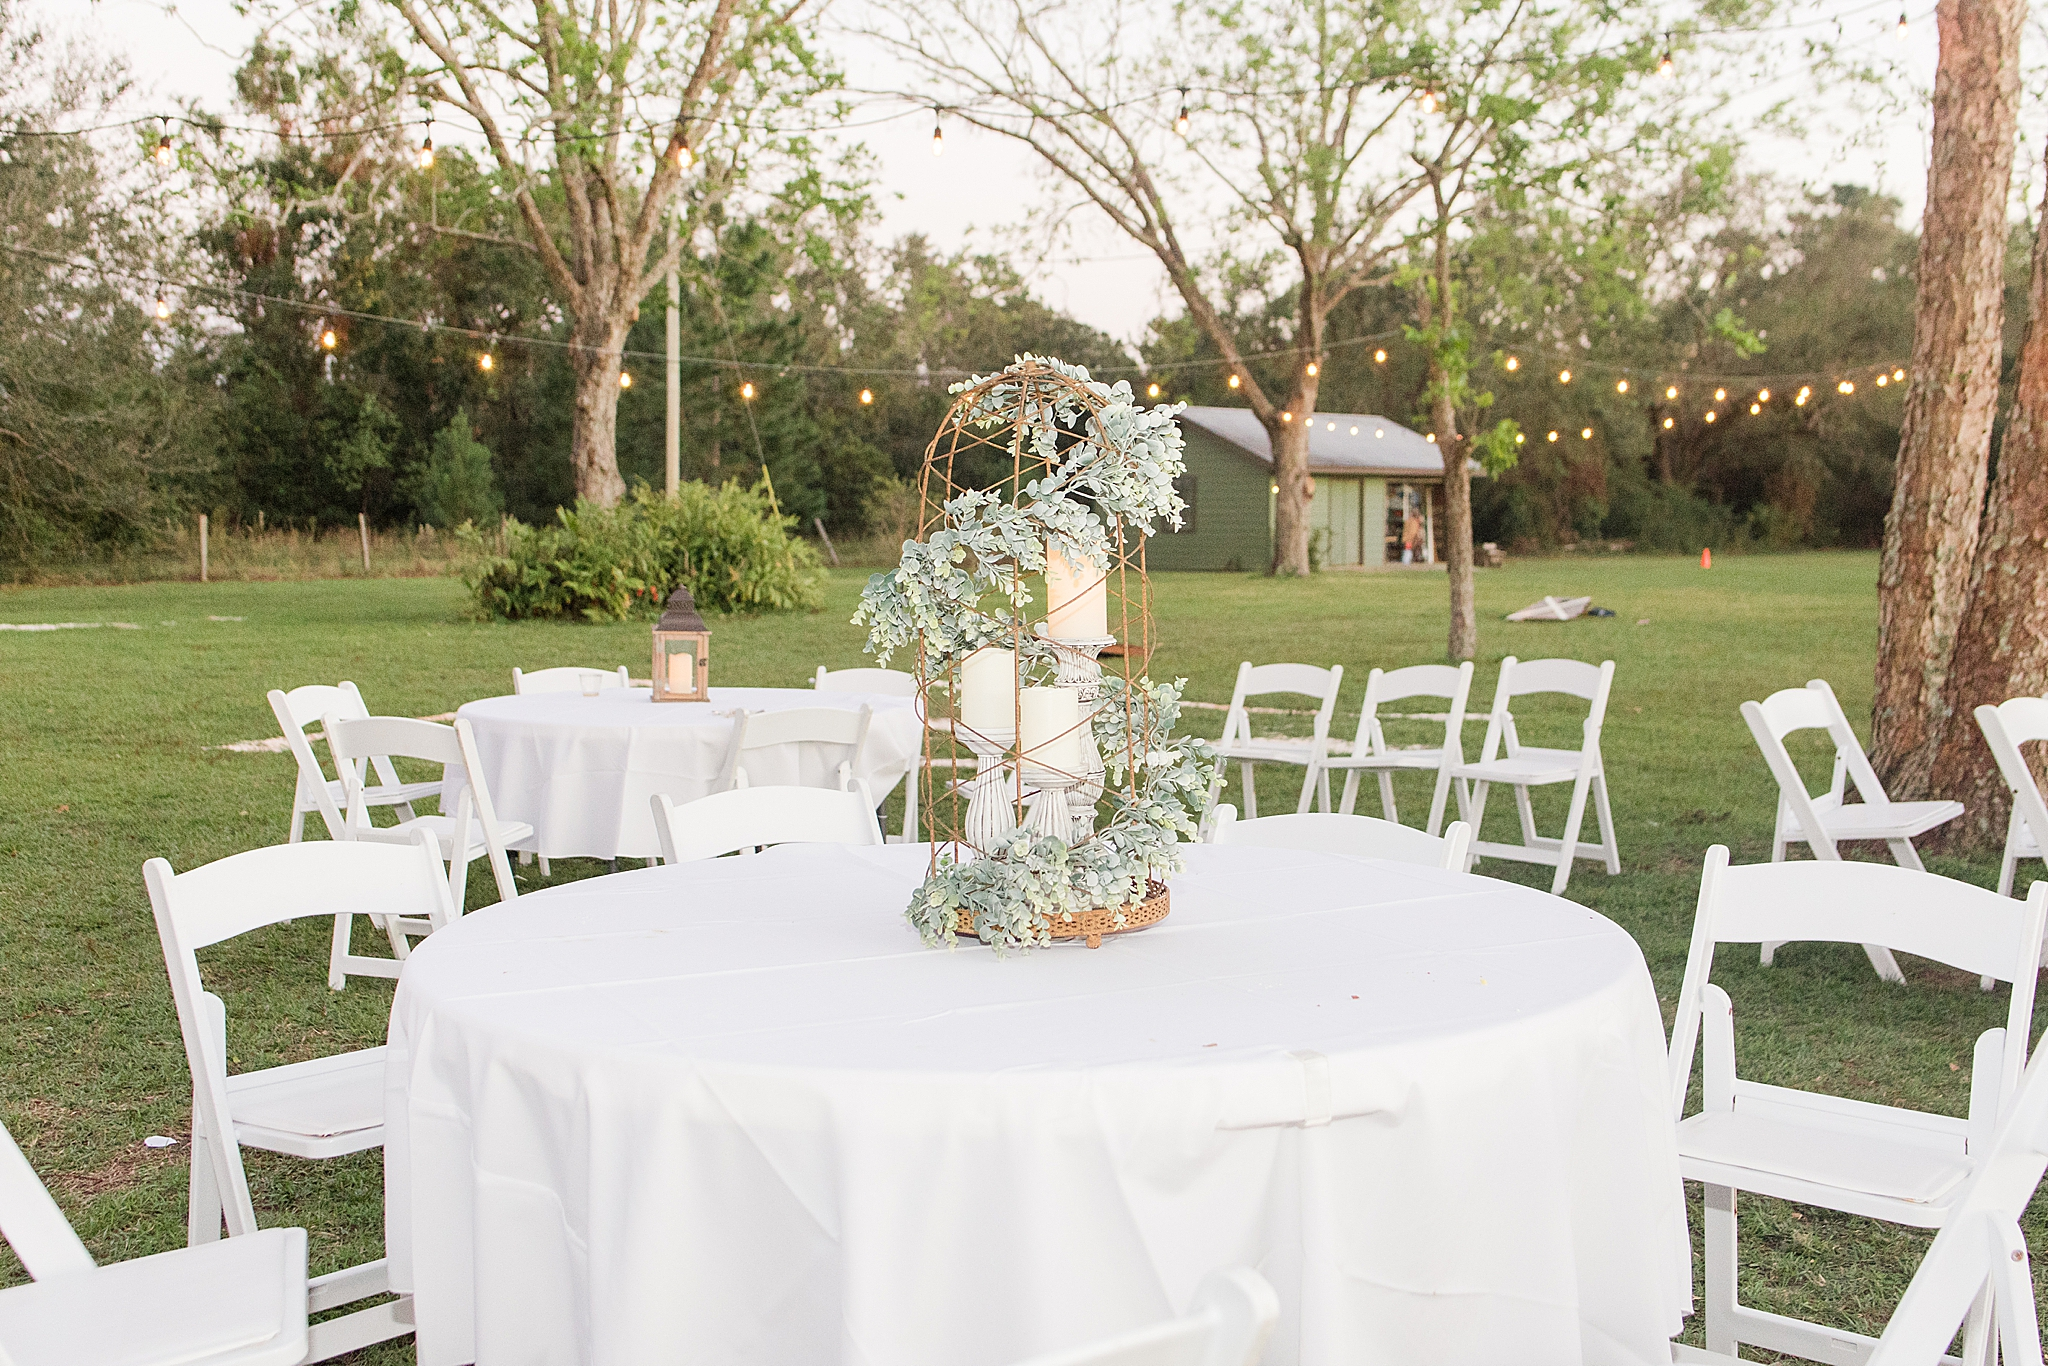 table centerpieces for park wedding in Alabama